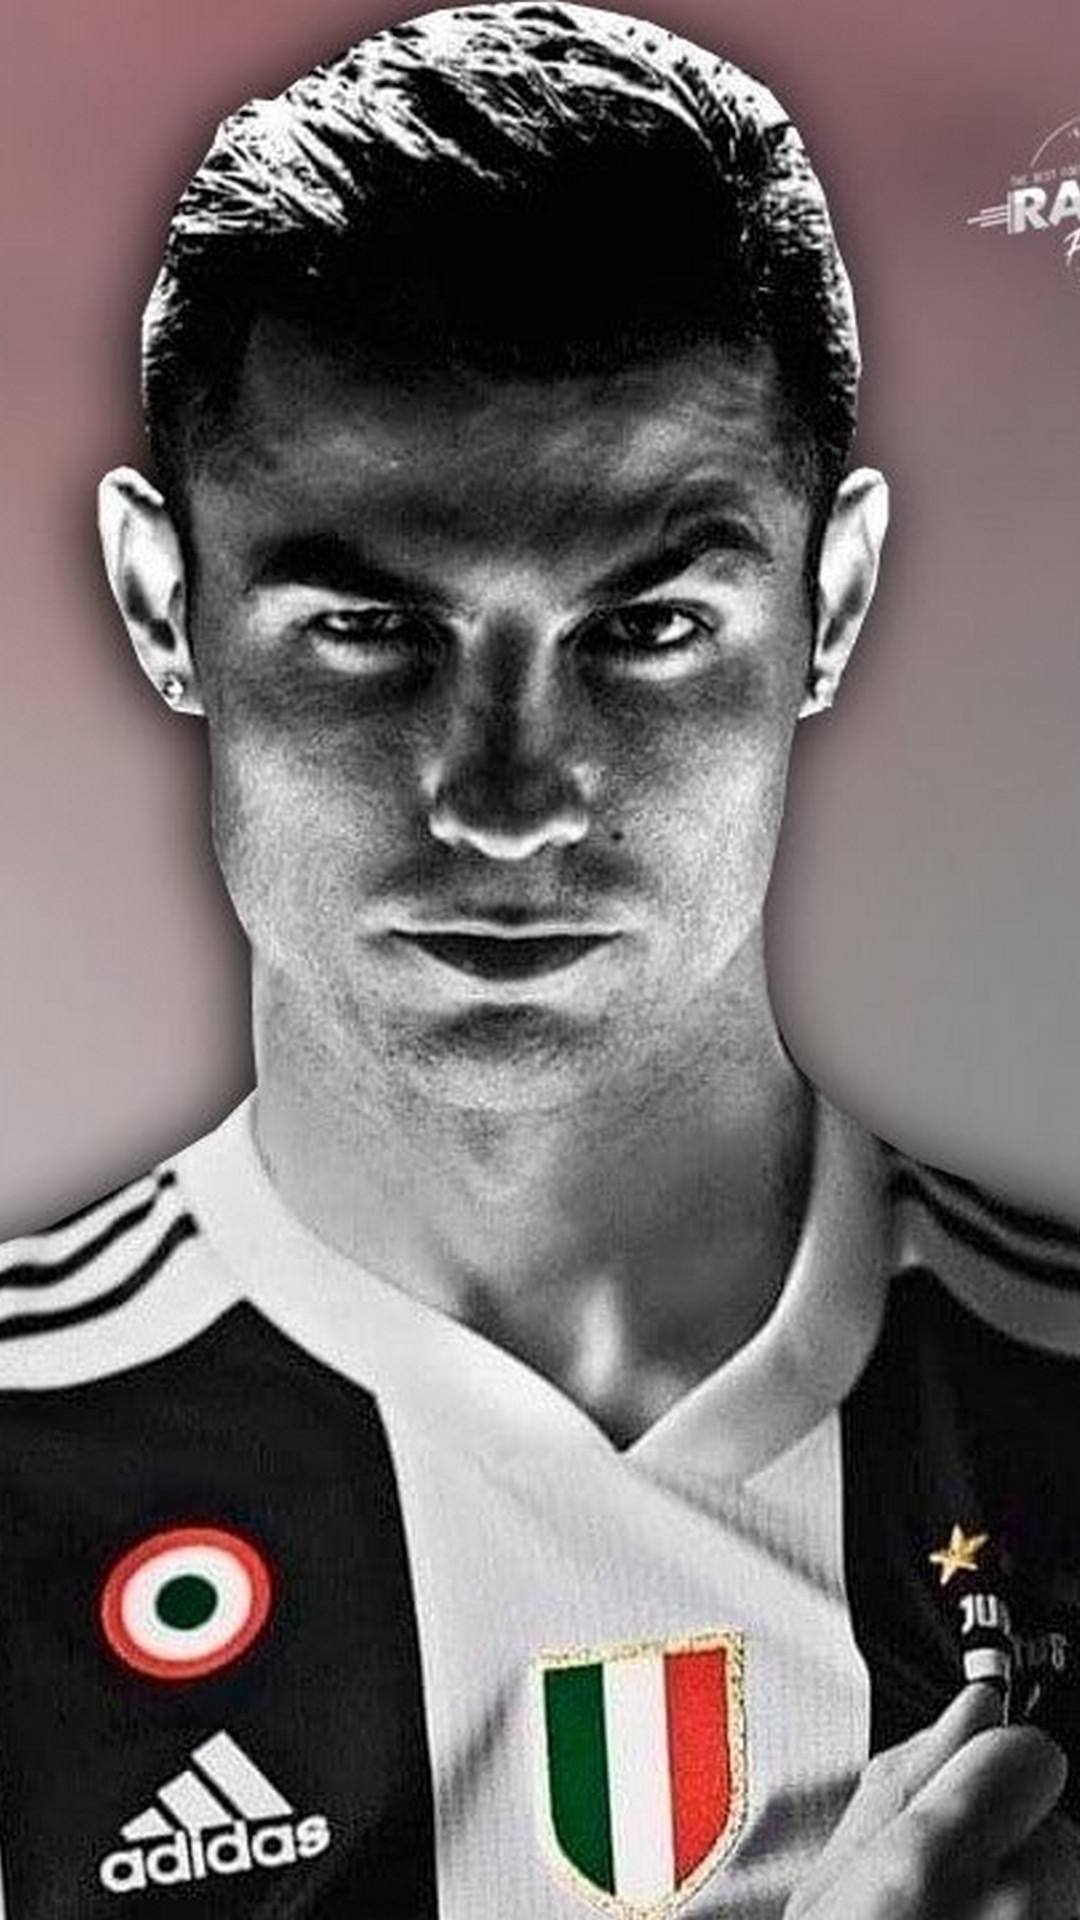 Wallpaper Cristiano Ronaldo Juventus iPhone 2021 3D iPhone Wallpaper 1080x1920